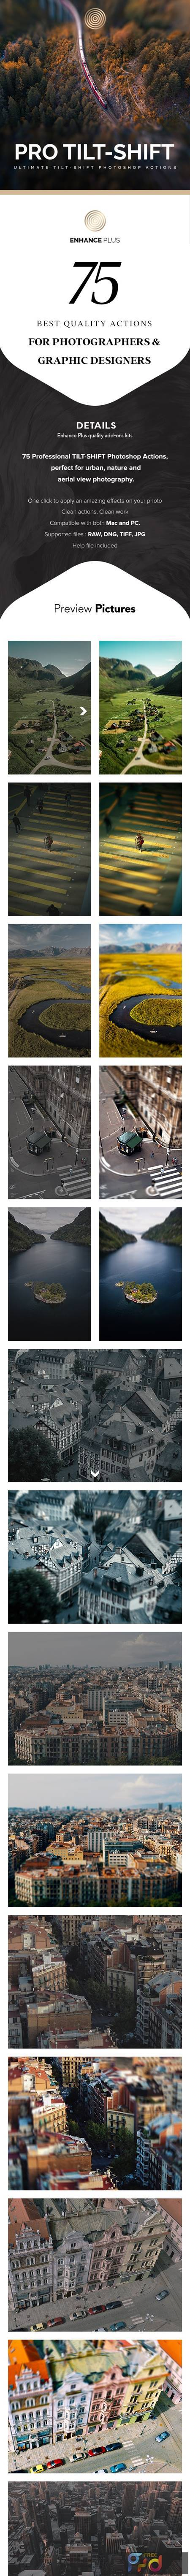 Professional Tilt-Shift Photoshop Actions 28114444 1